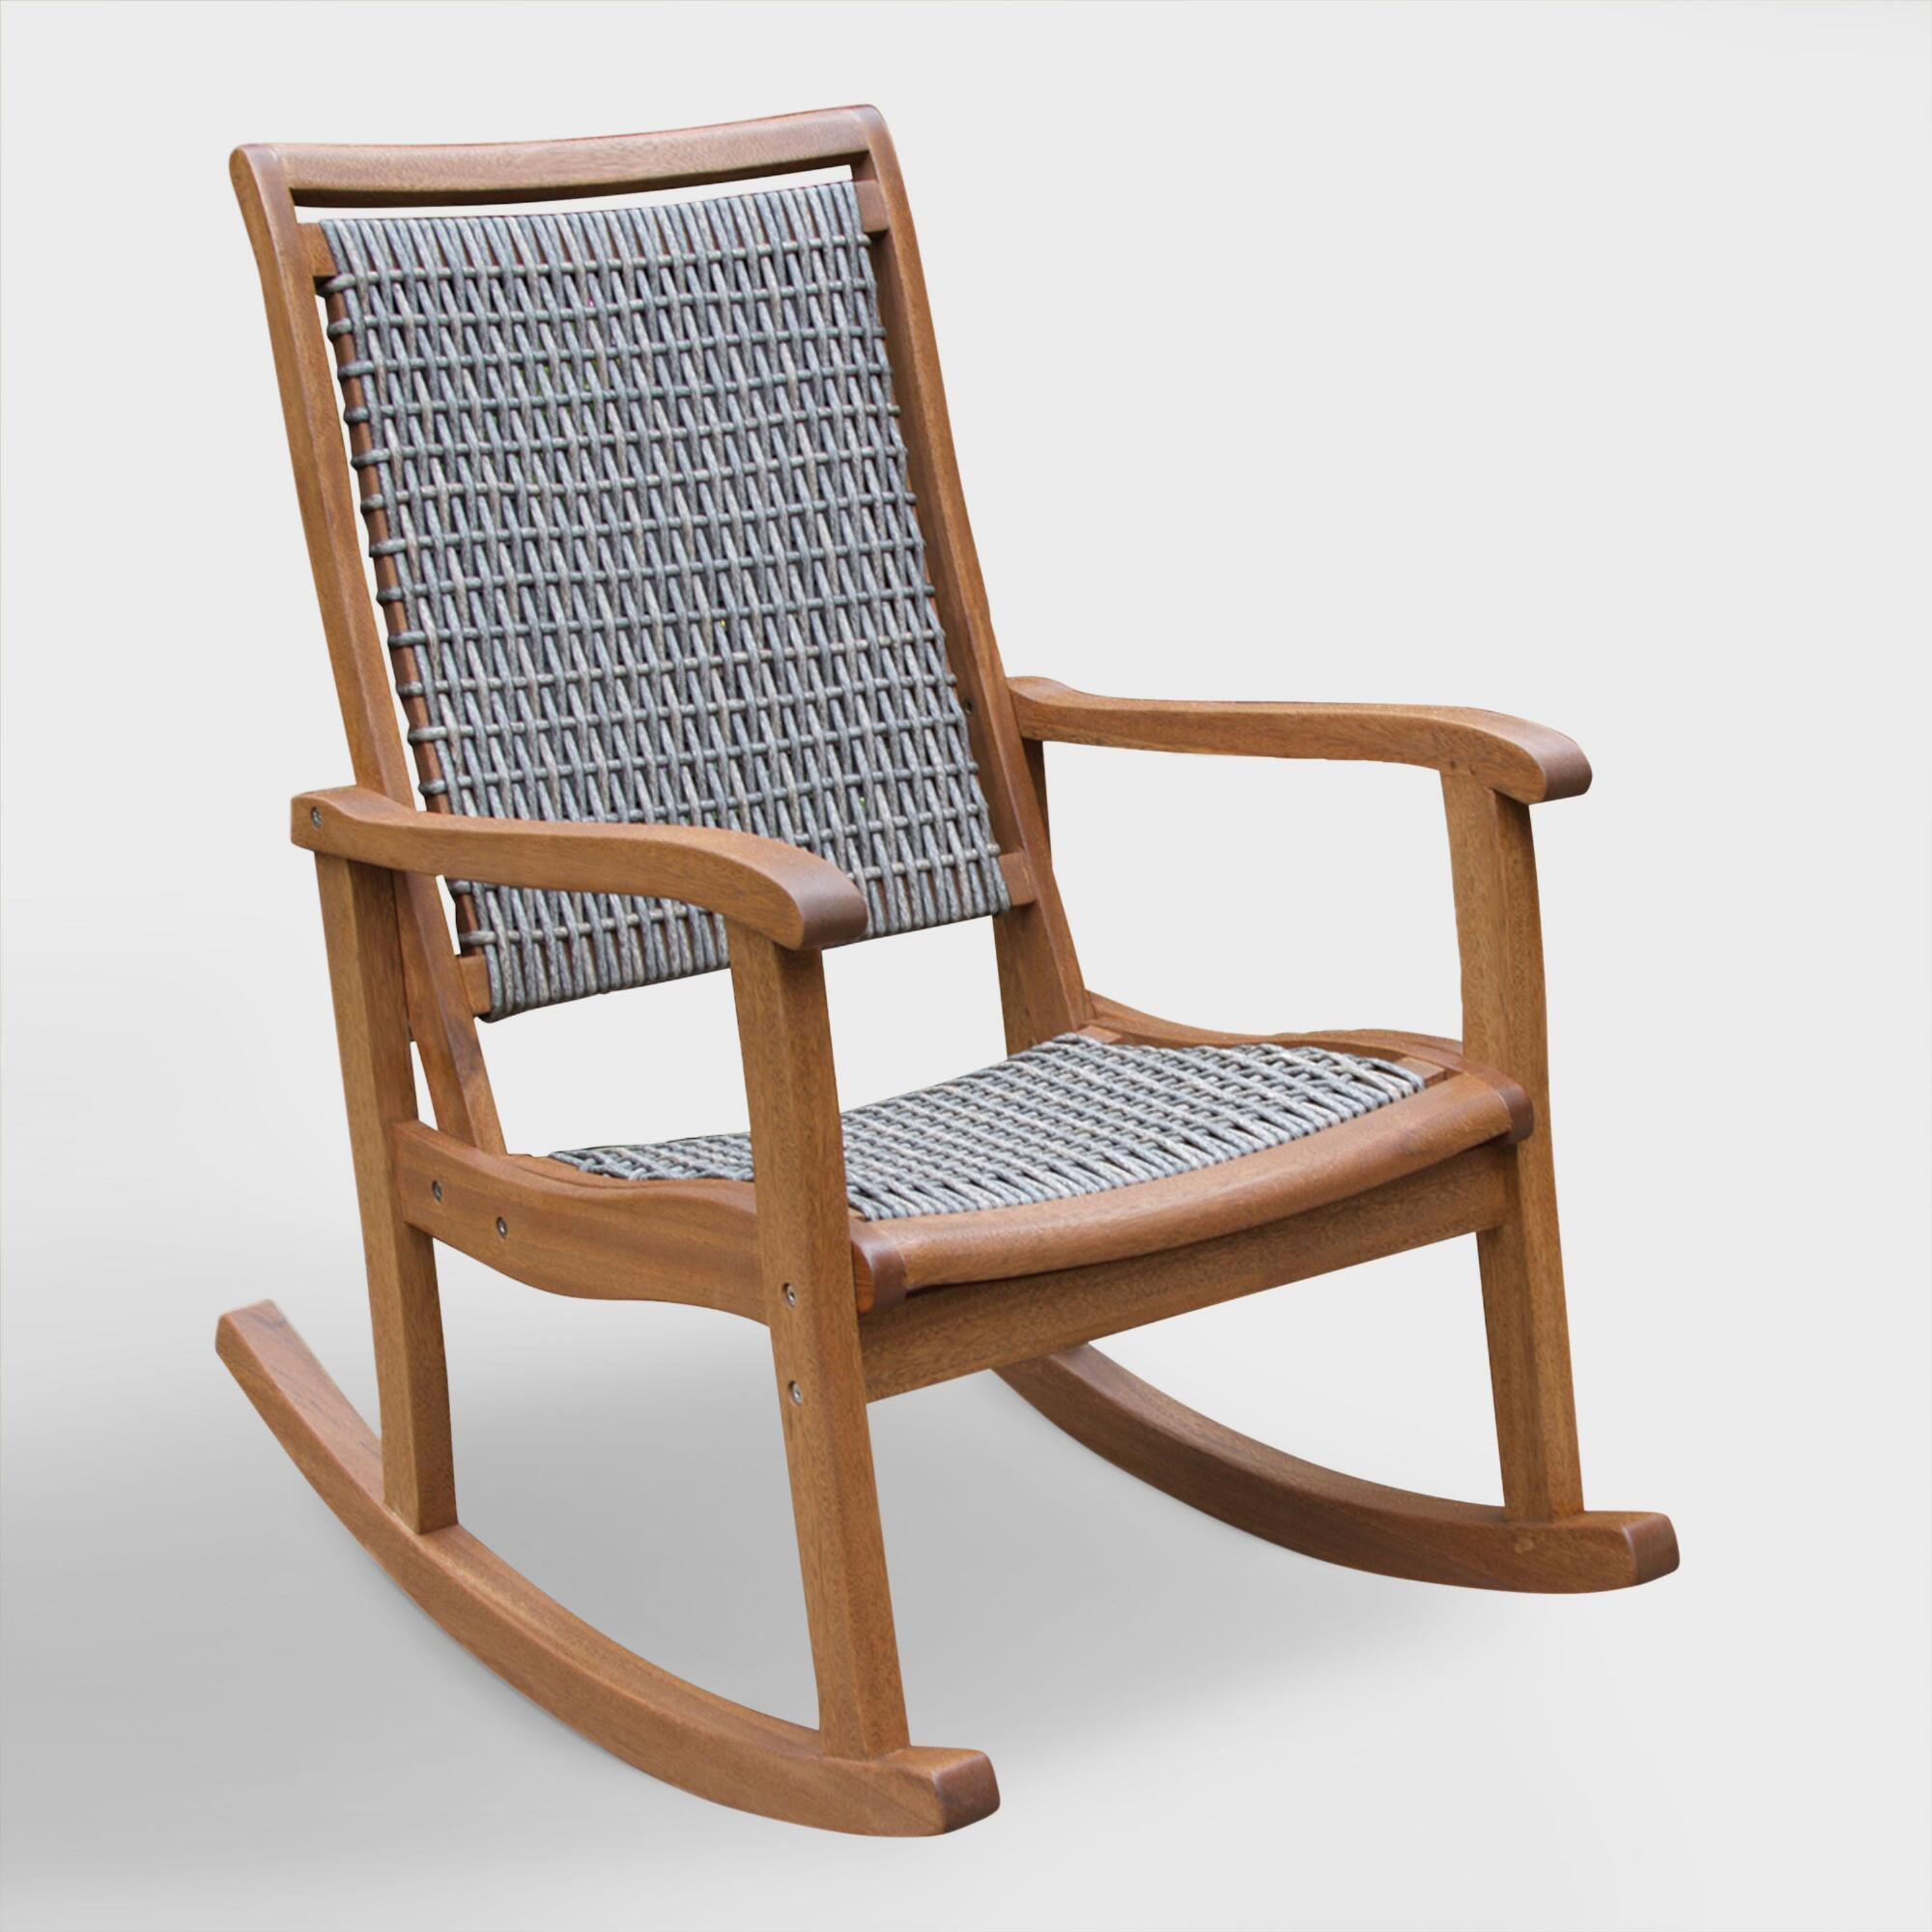 Best Place To Buy Rocking Chairs Wicker Wood All Weather Rocking Chair